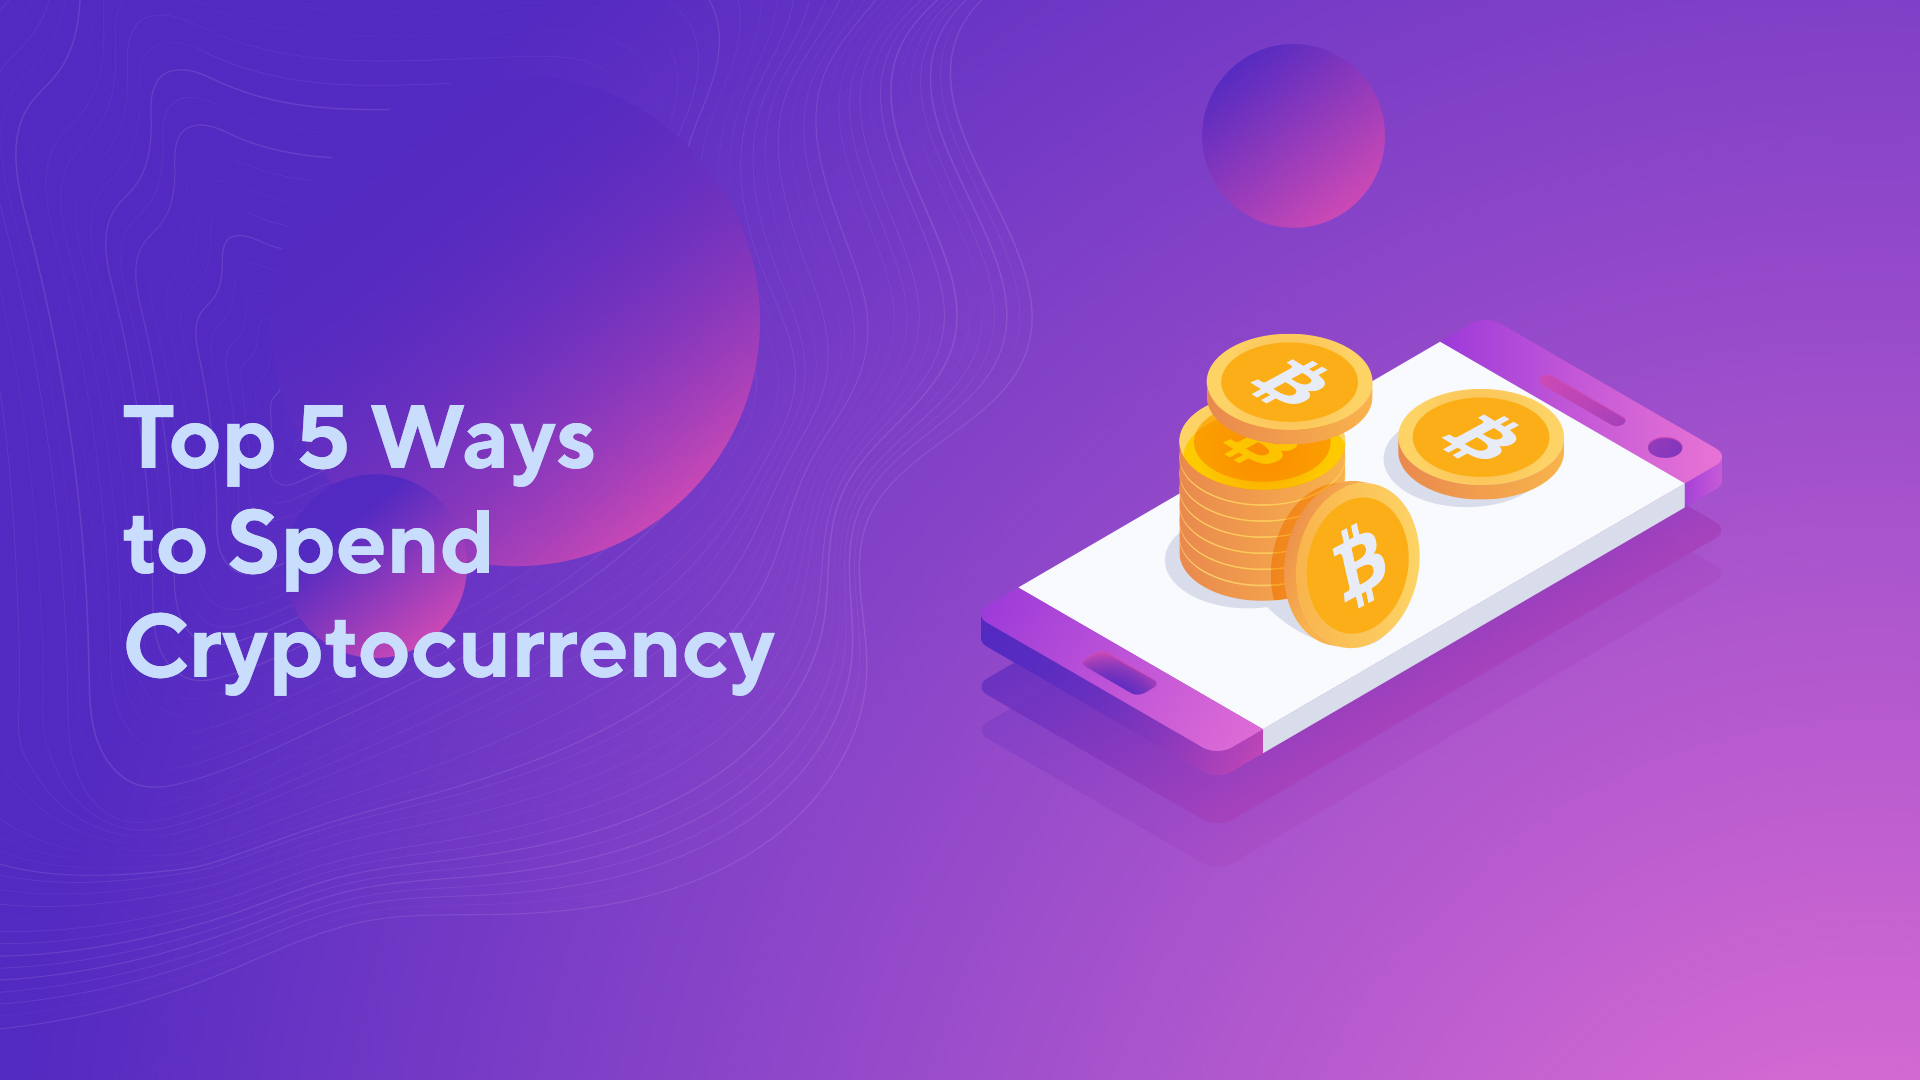 Top 5 Ways to Spend Cryptocurrency